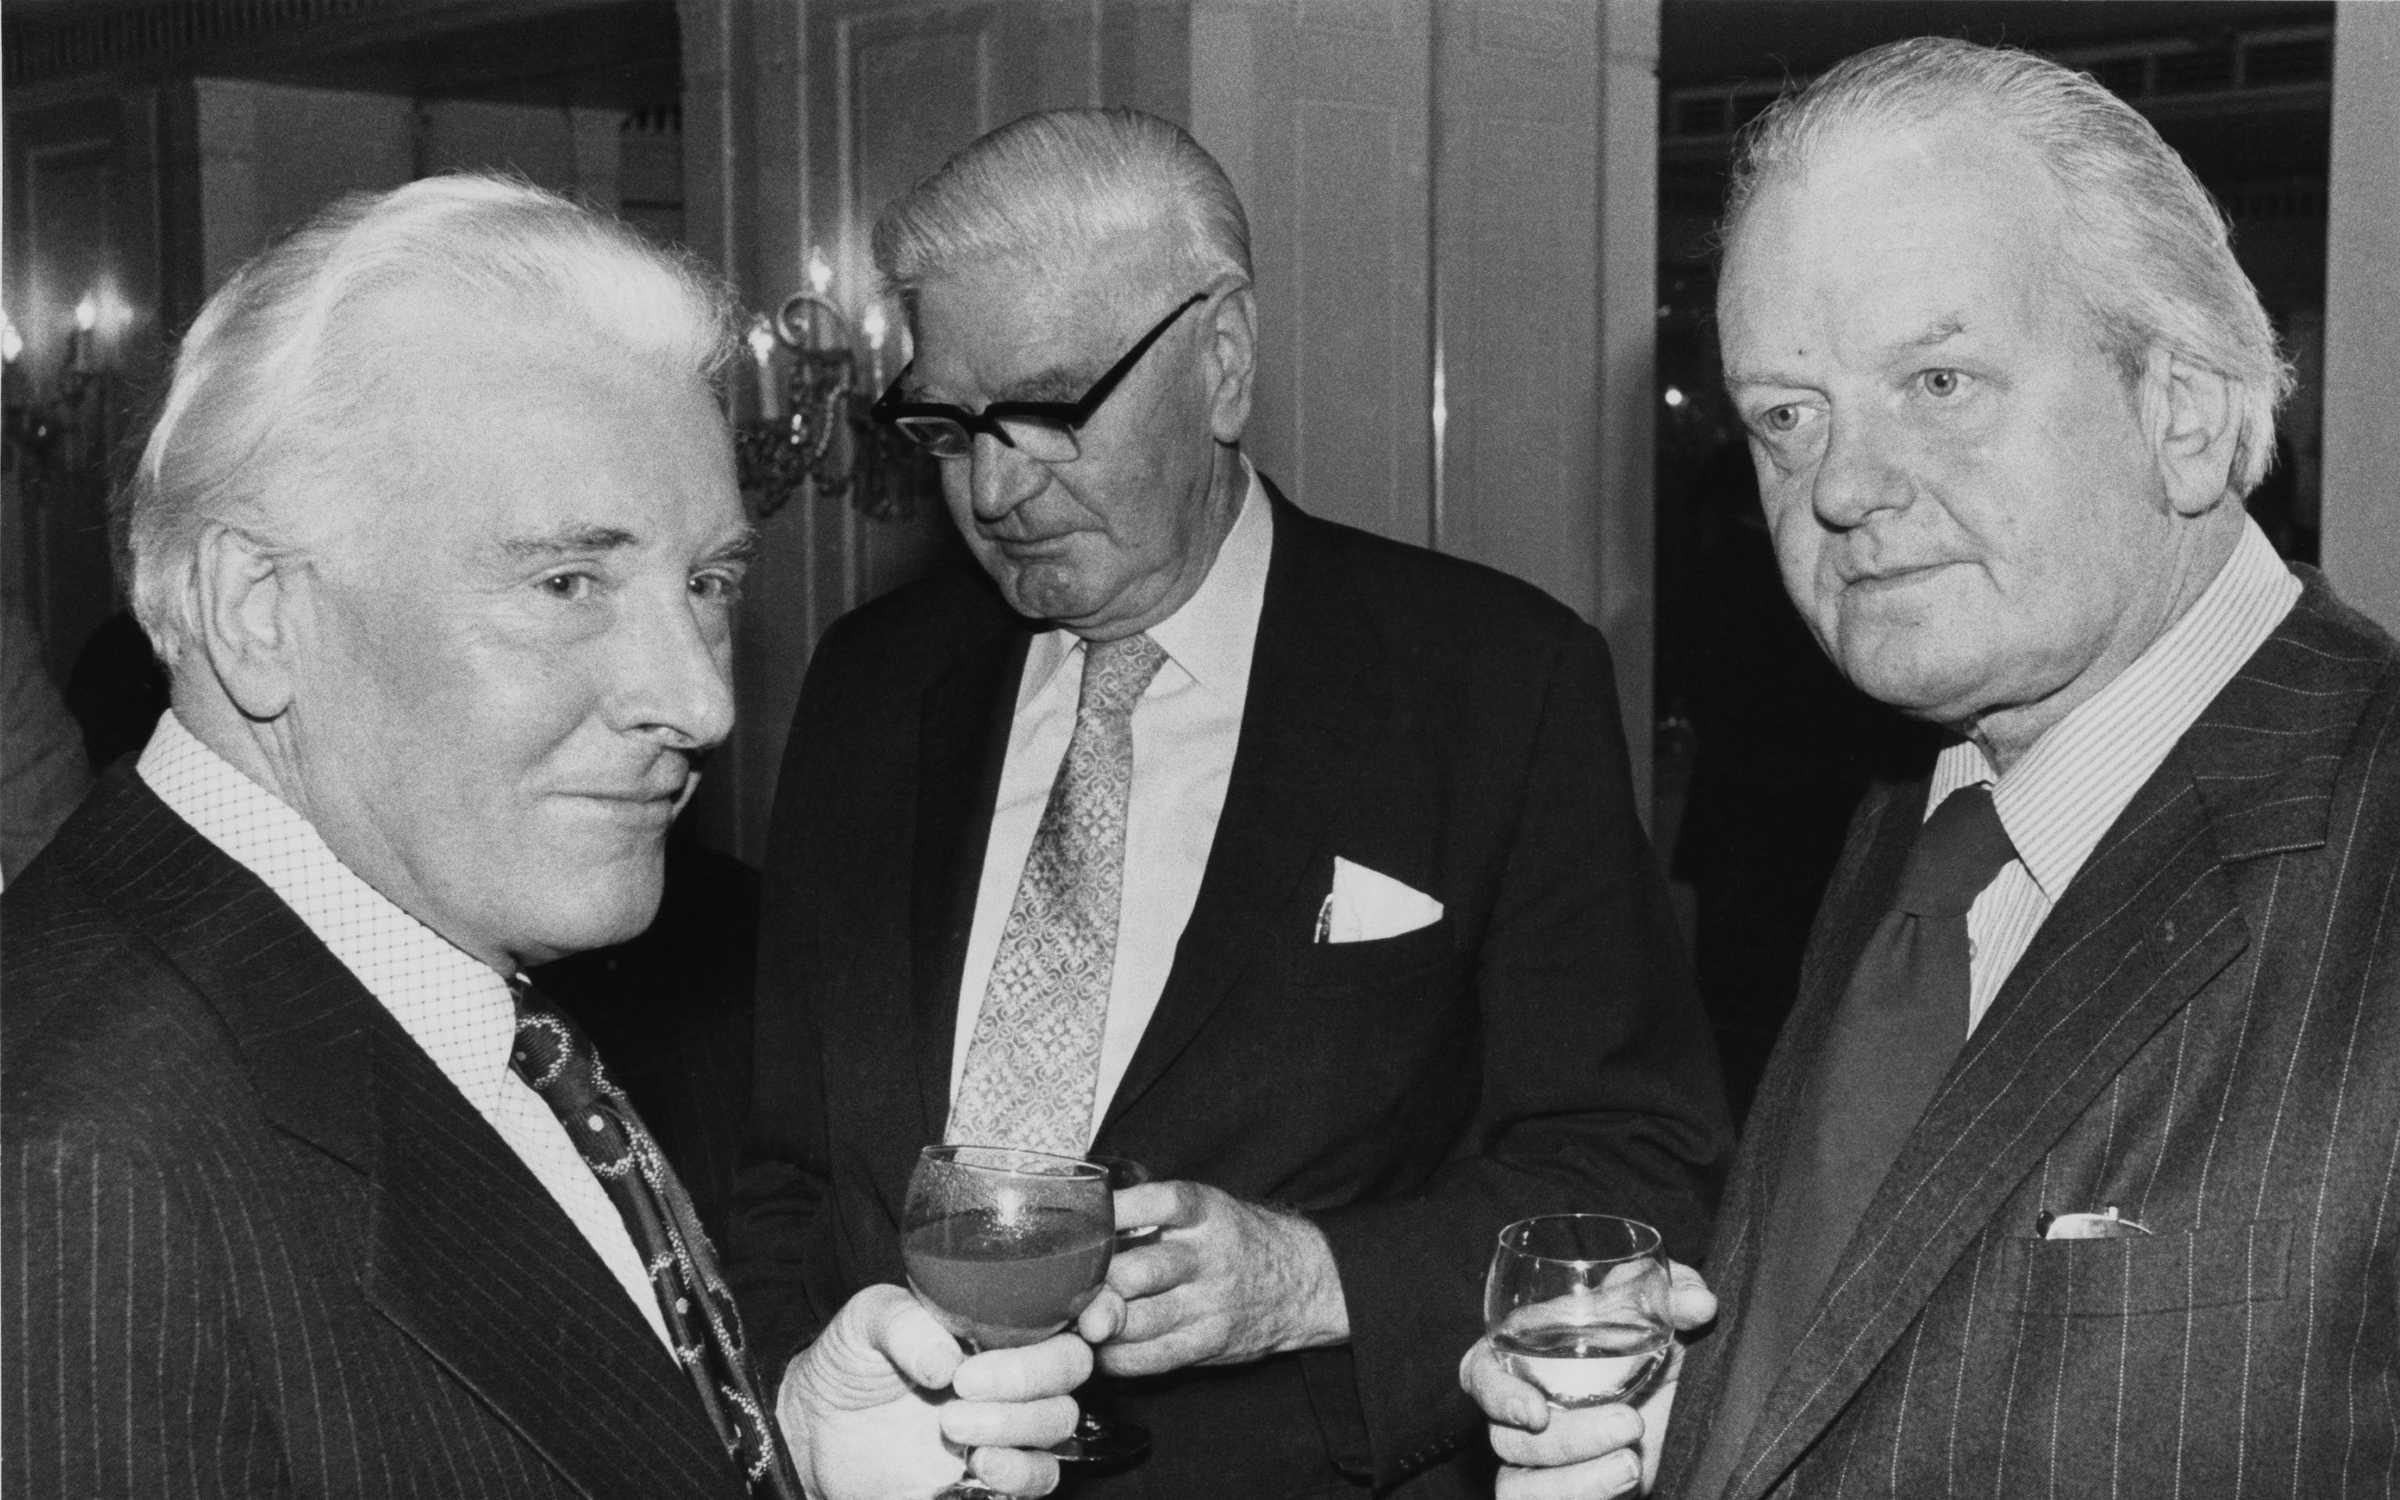 George Kennedy Young (middle) stands between fellow espionage writers Andrew Boyle (left) and Major Douglas Sutherland (right). Credit: Central Press/Hulton Archive/Getty Images.